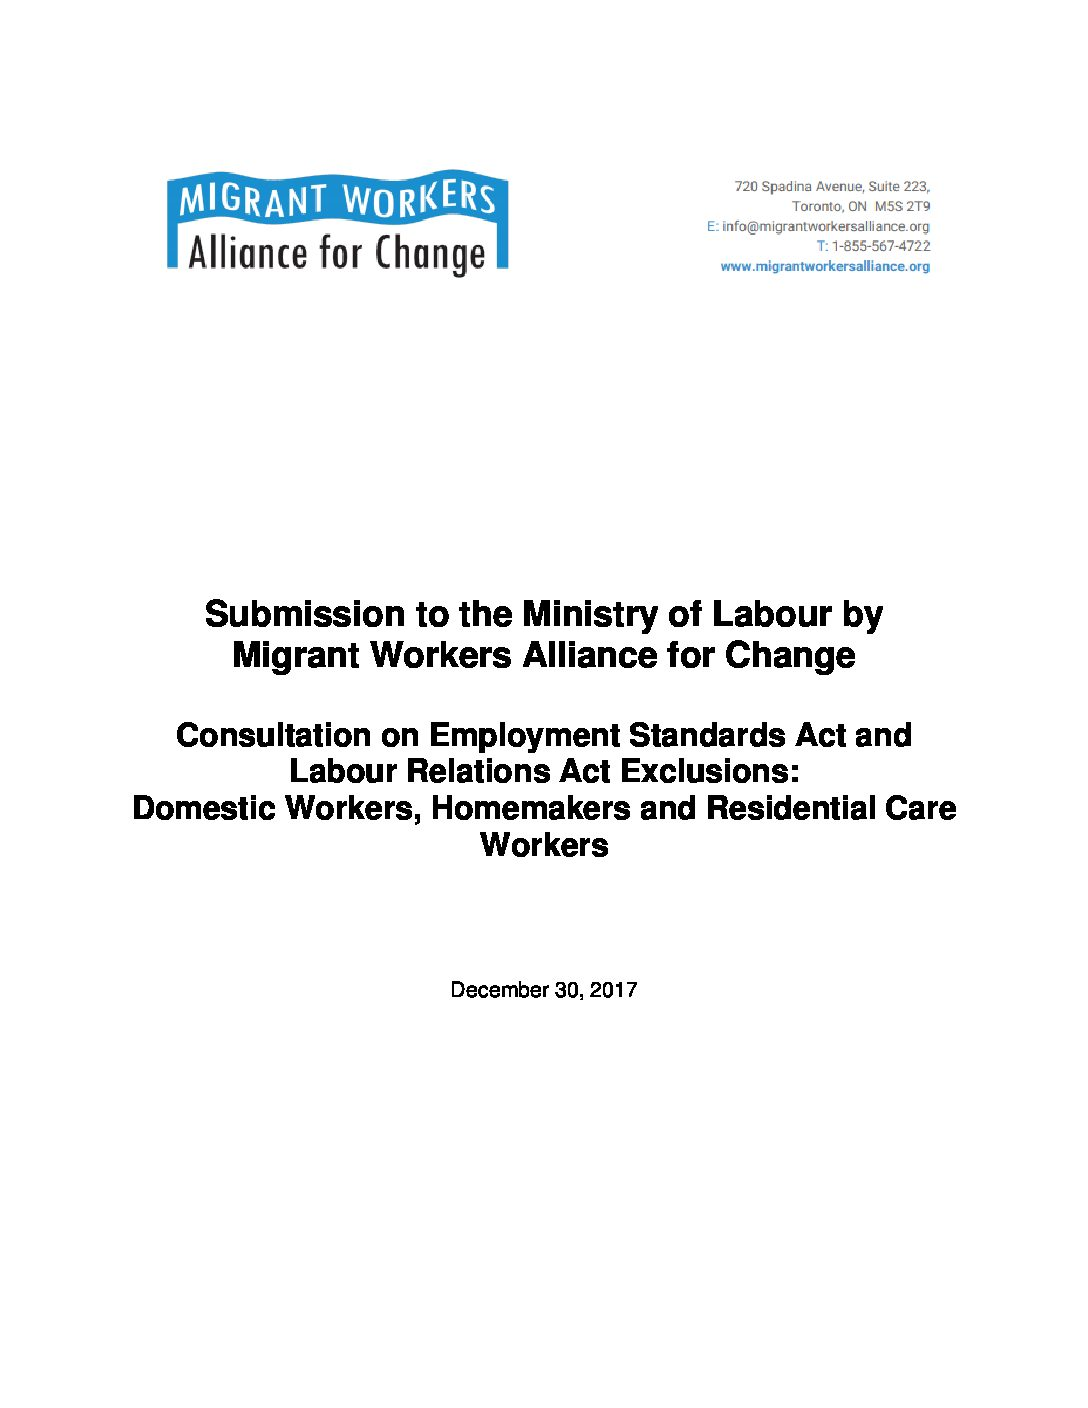 Policy Submission: Labour exemptions for Domestic Workers, Homemakers and Residential Care Workers